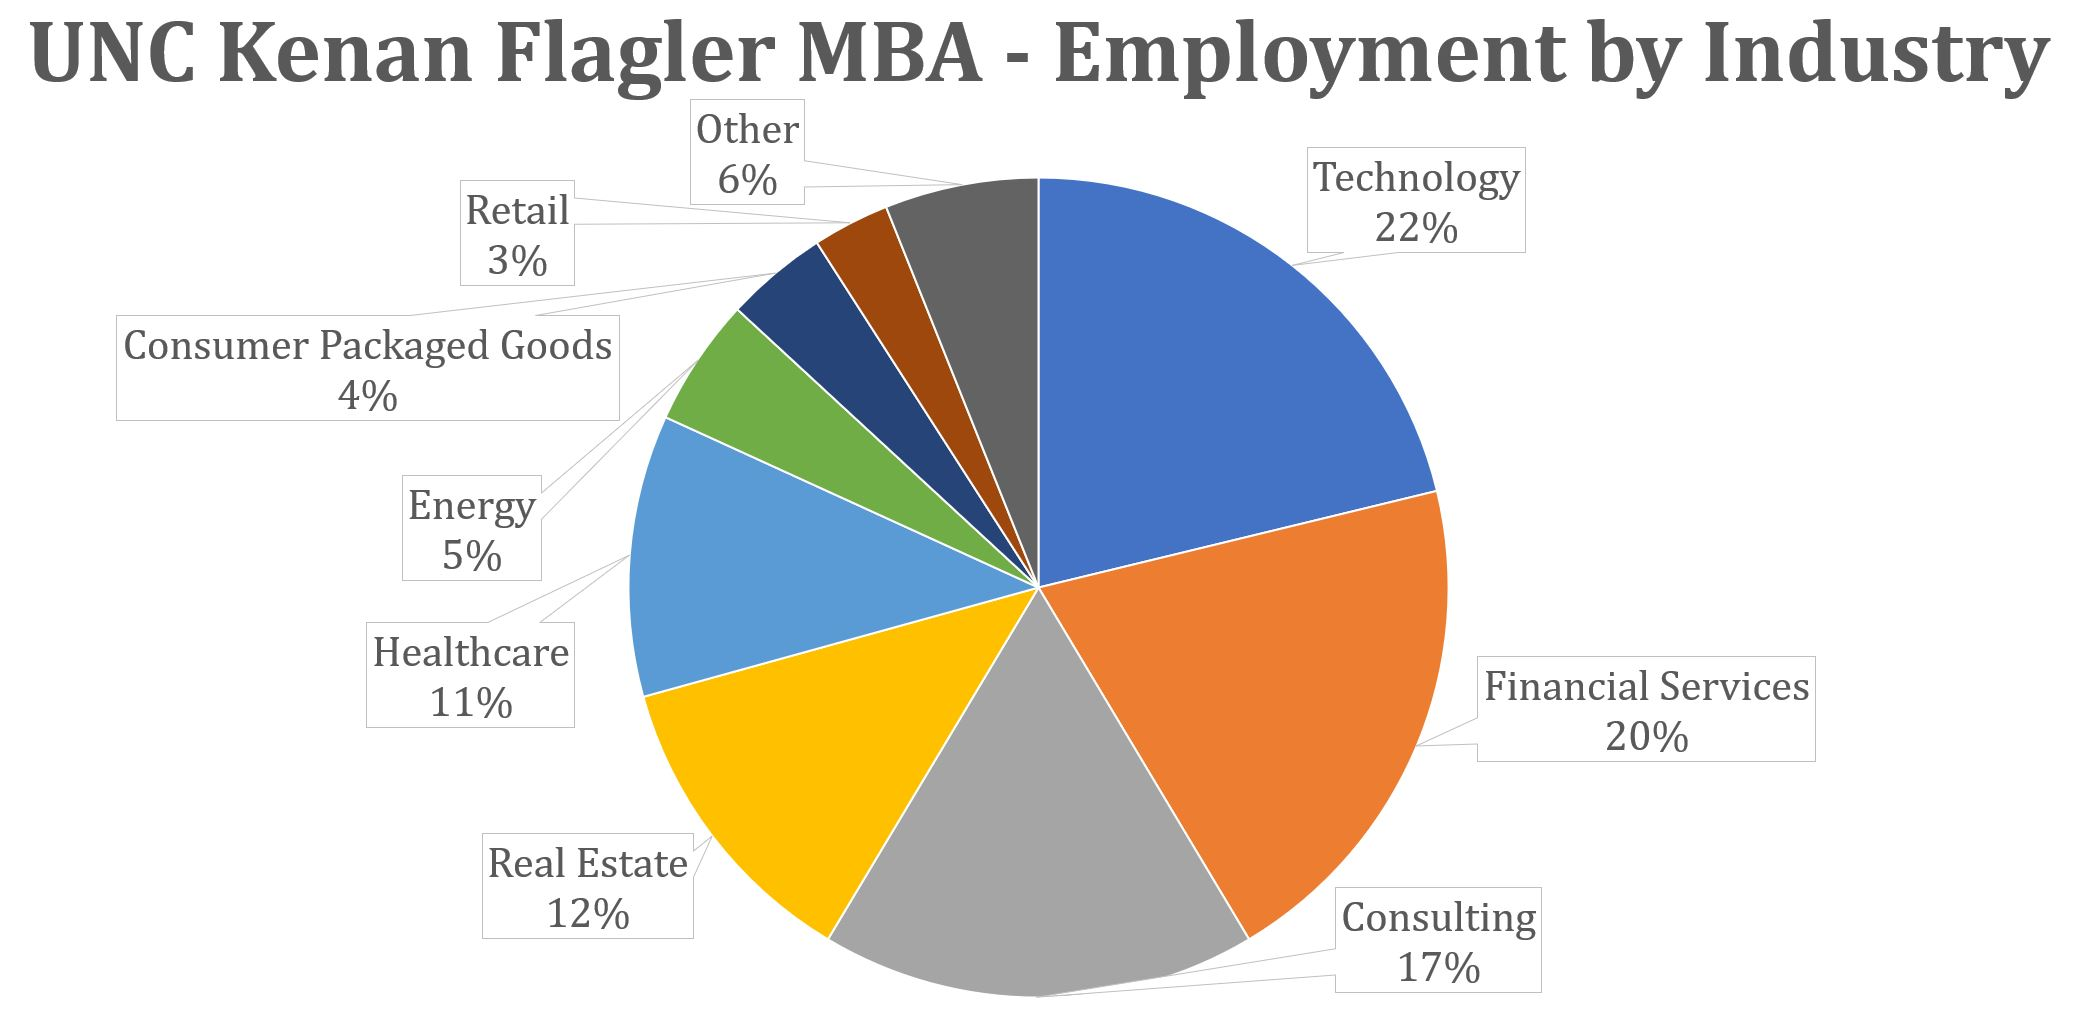 UNC Kenan Flagler MBA - Employment by Industry